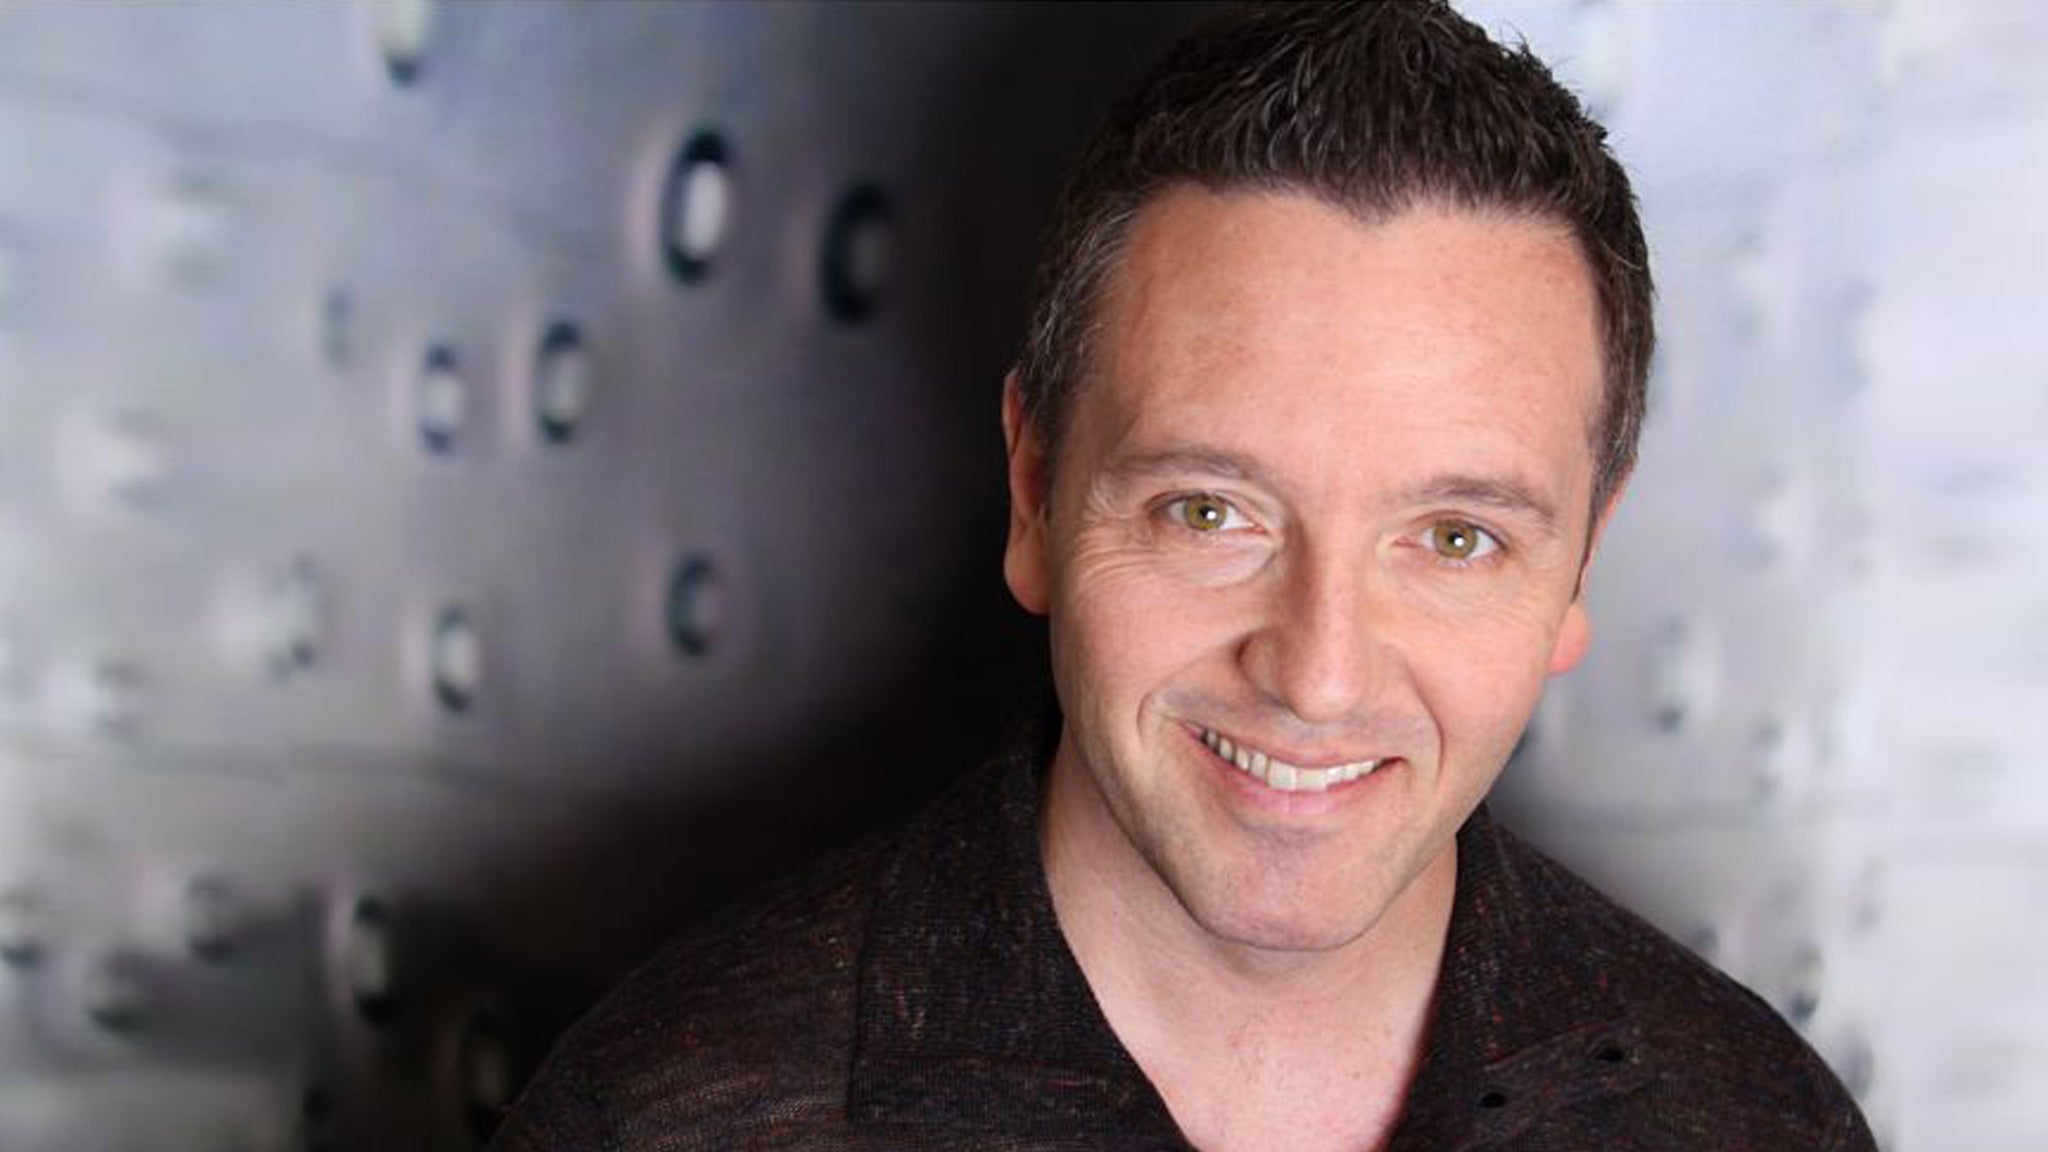 John Edward at Orpheum Theatre - Wichita KS